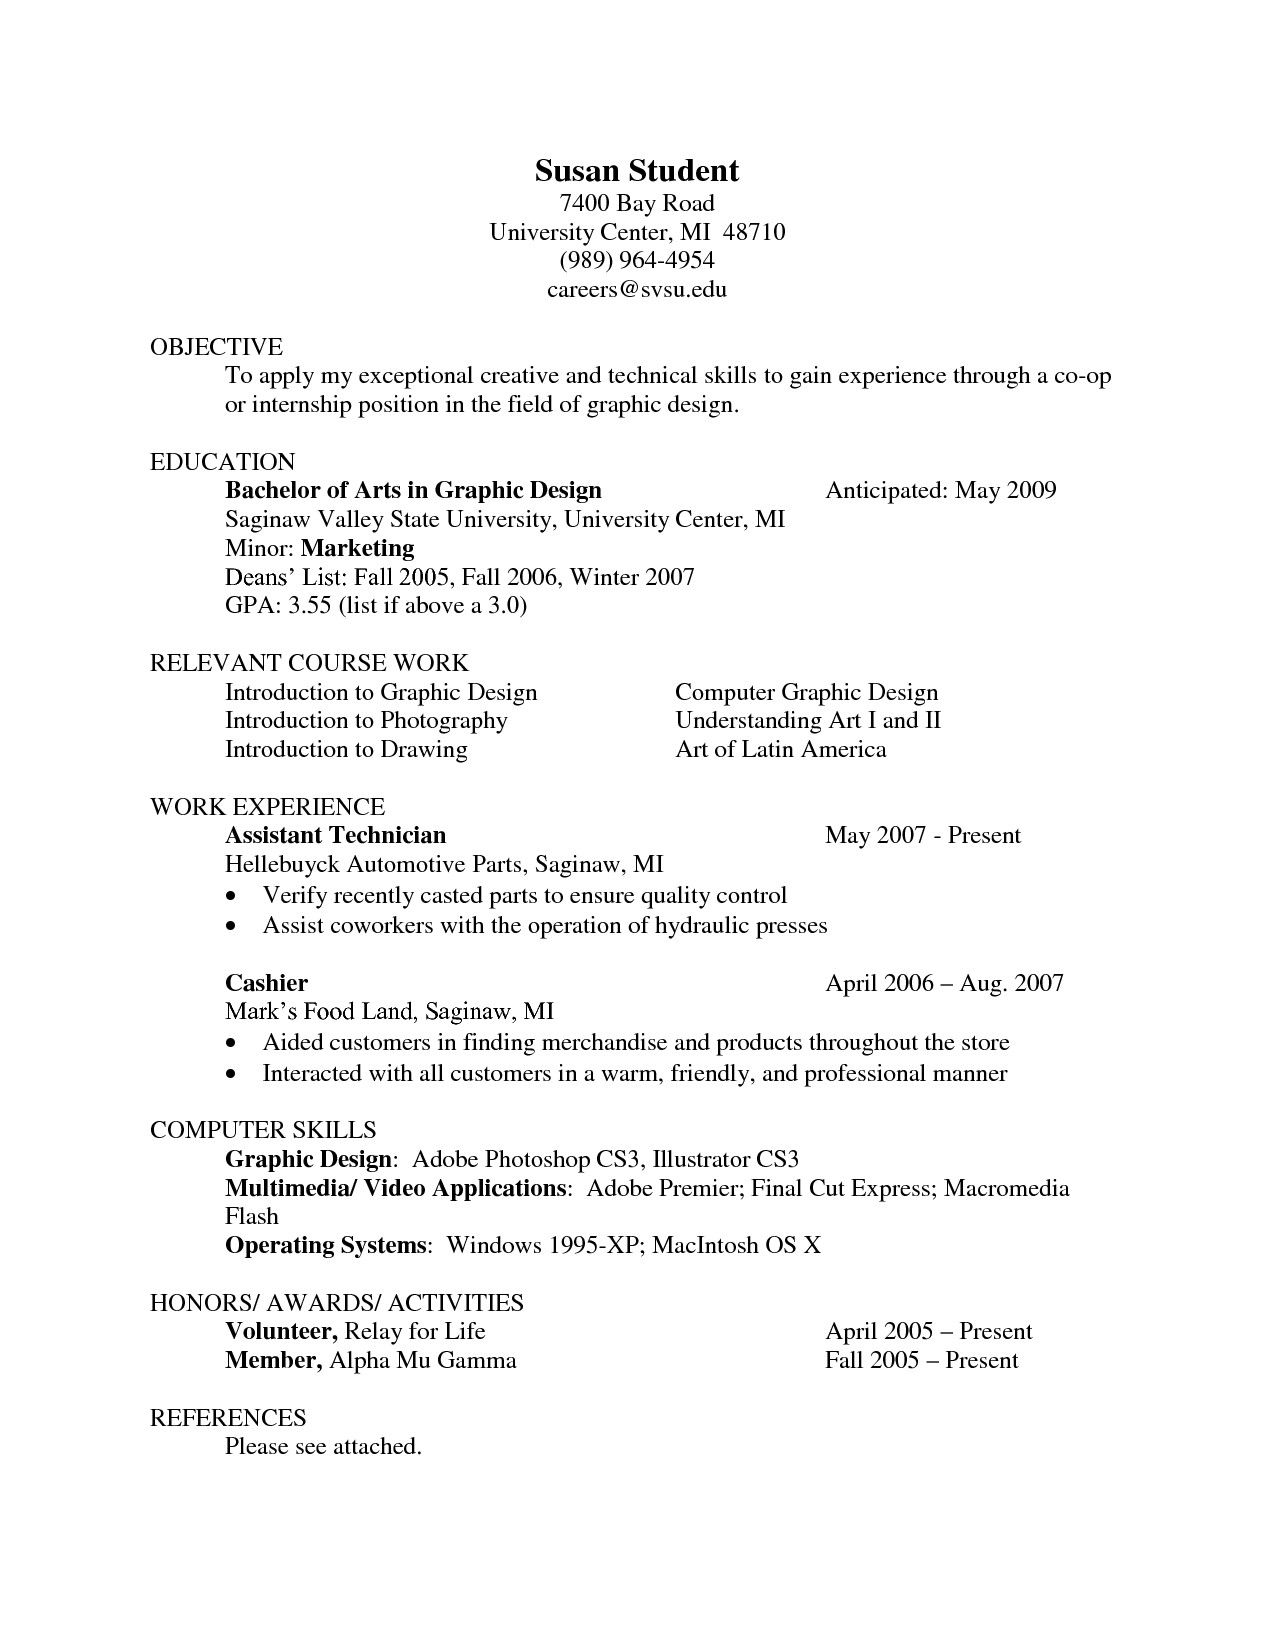 List Of Computer Skills For Resume Alluring Resume Examples References  Pinterest  Resume Examples